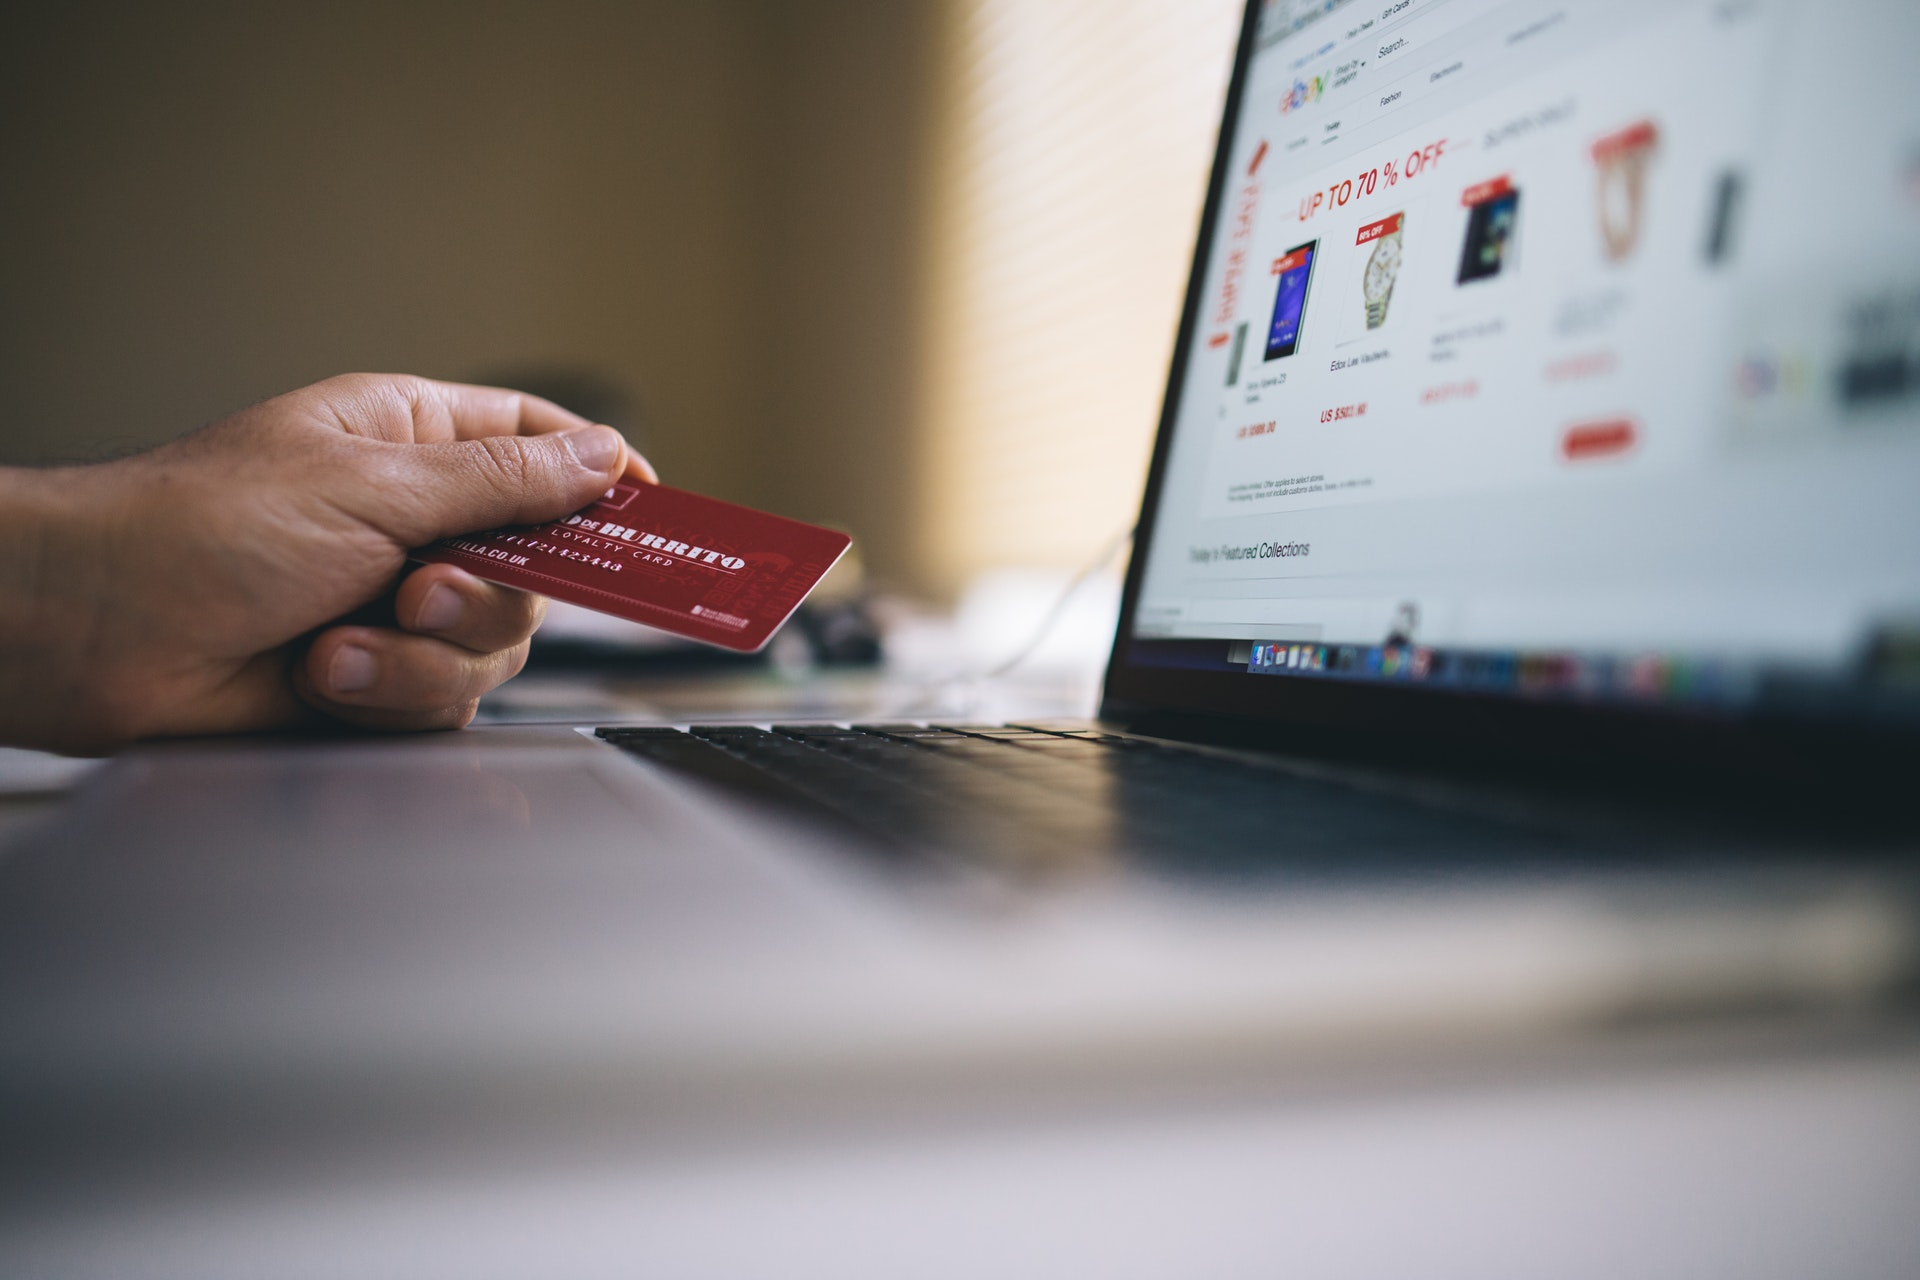 How to Add Value to Your Ecommerce Site